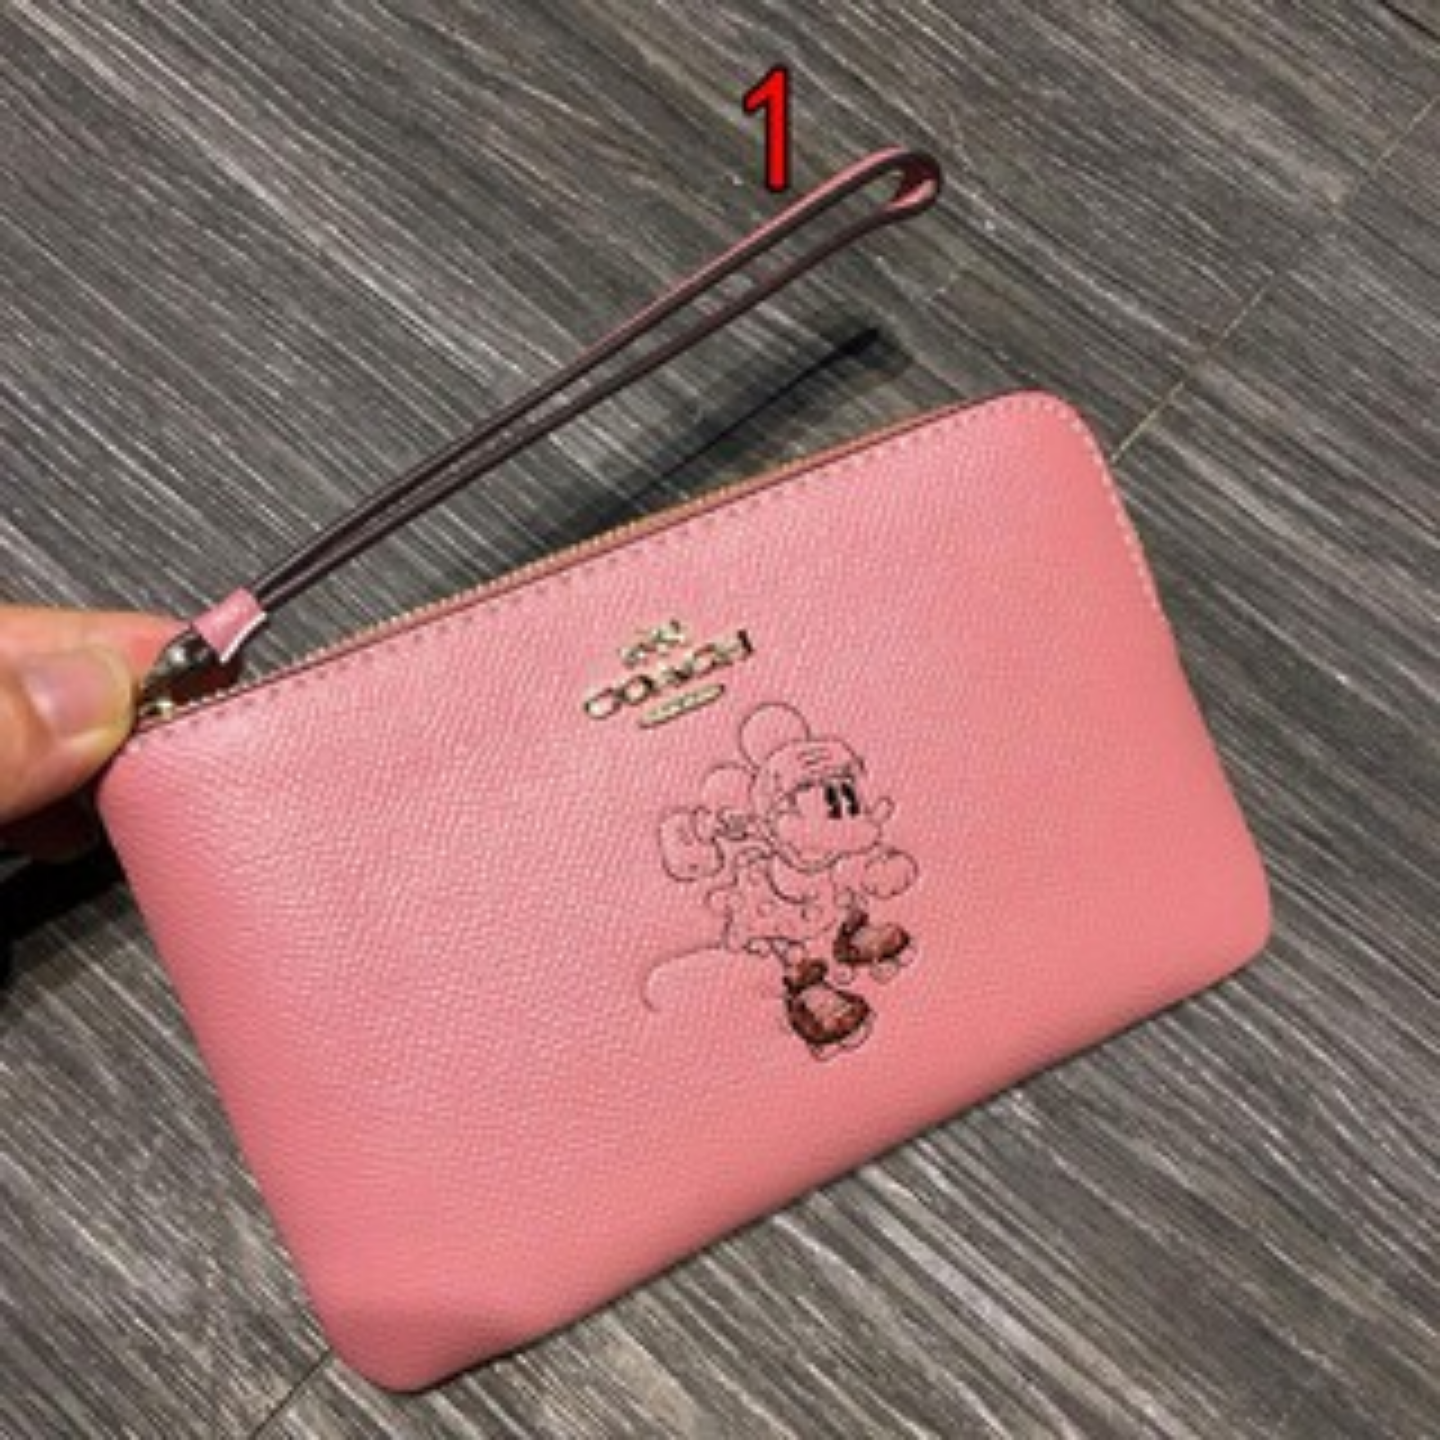 (SG COD) COACH F30004 limited edition Mickey zip clutch and mini wrist bag